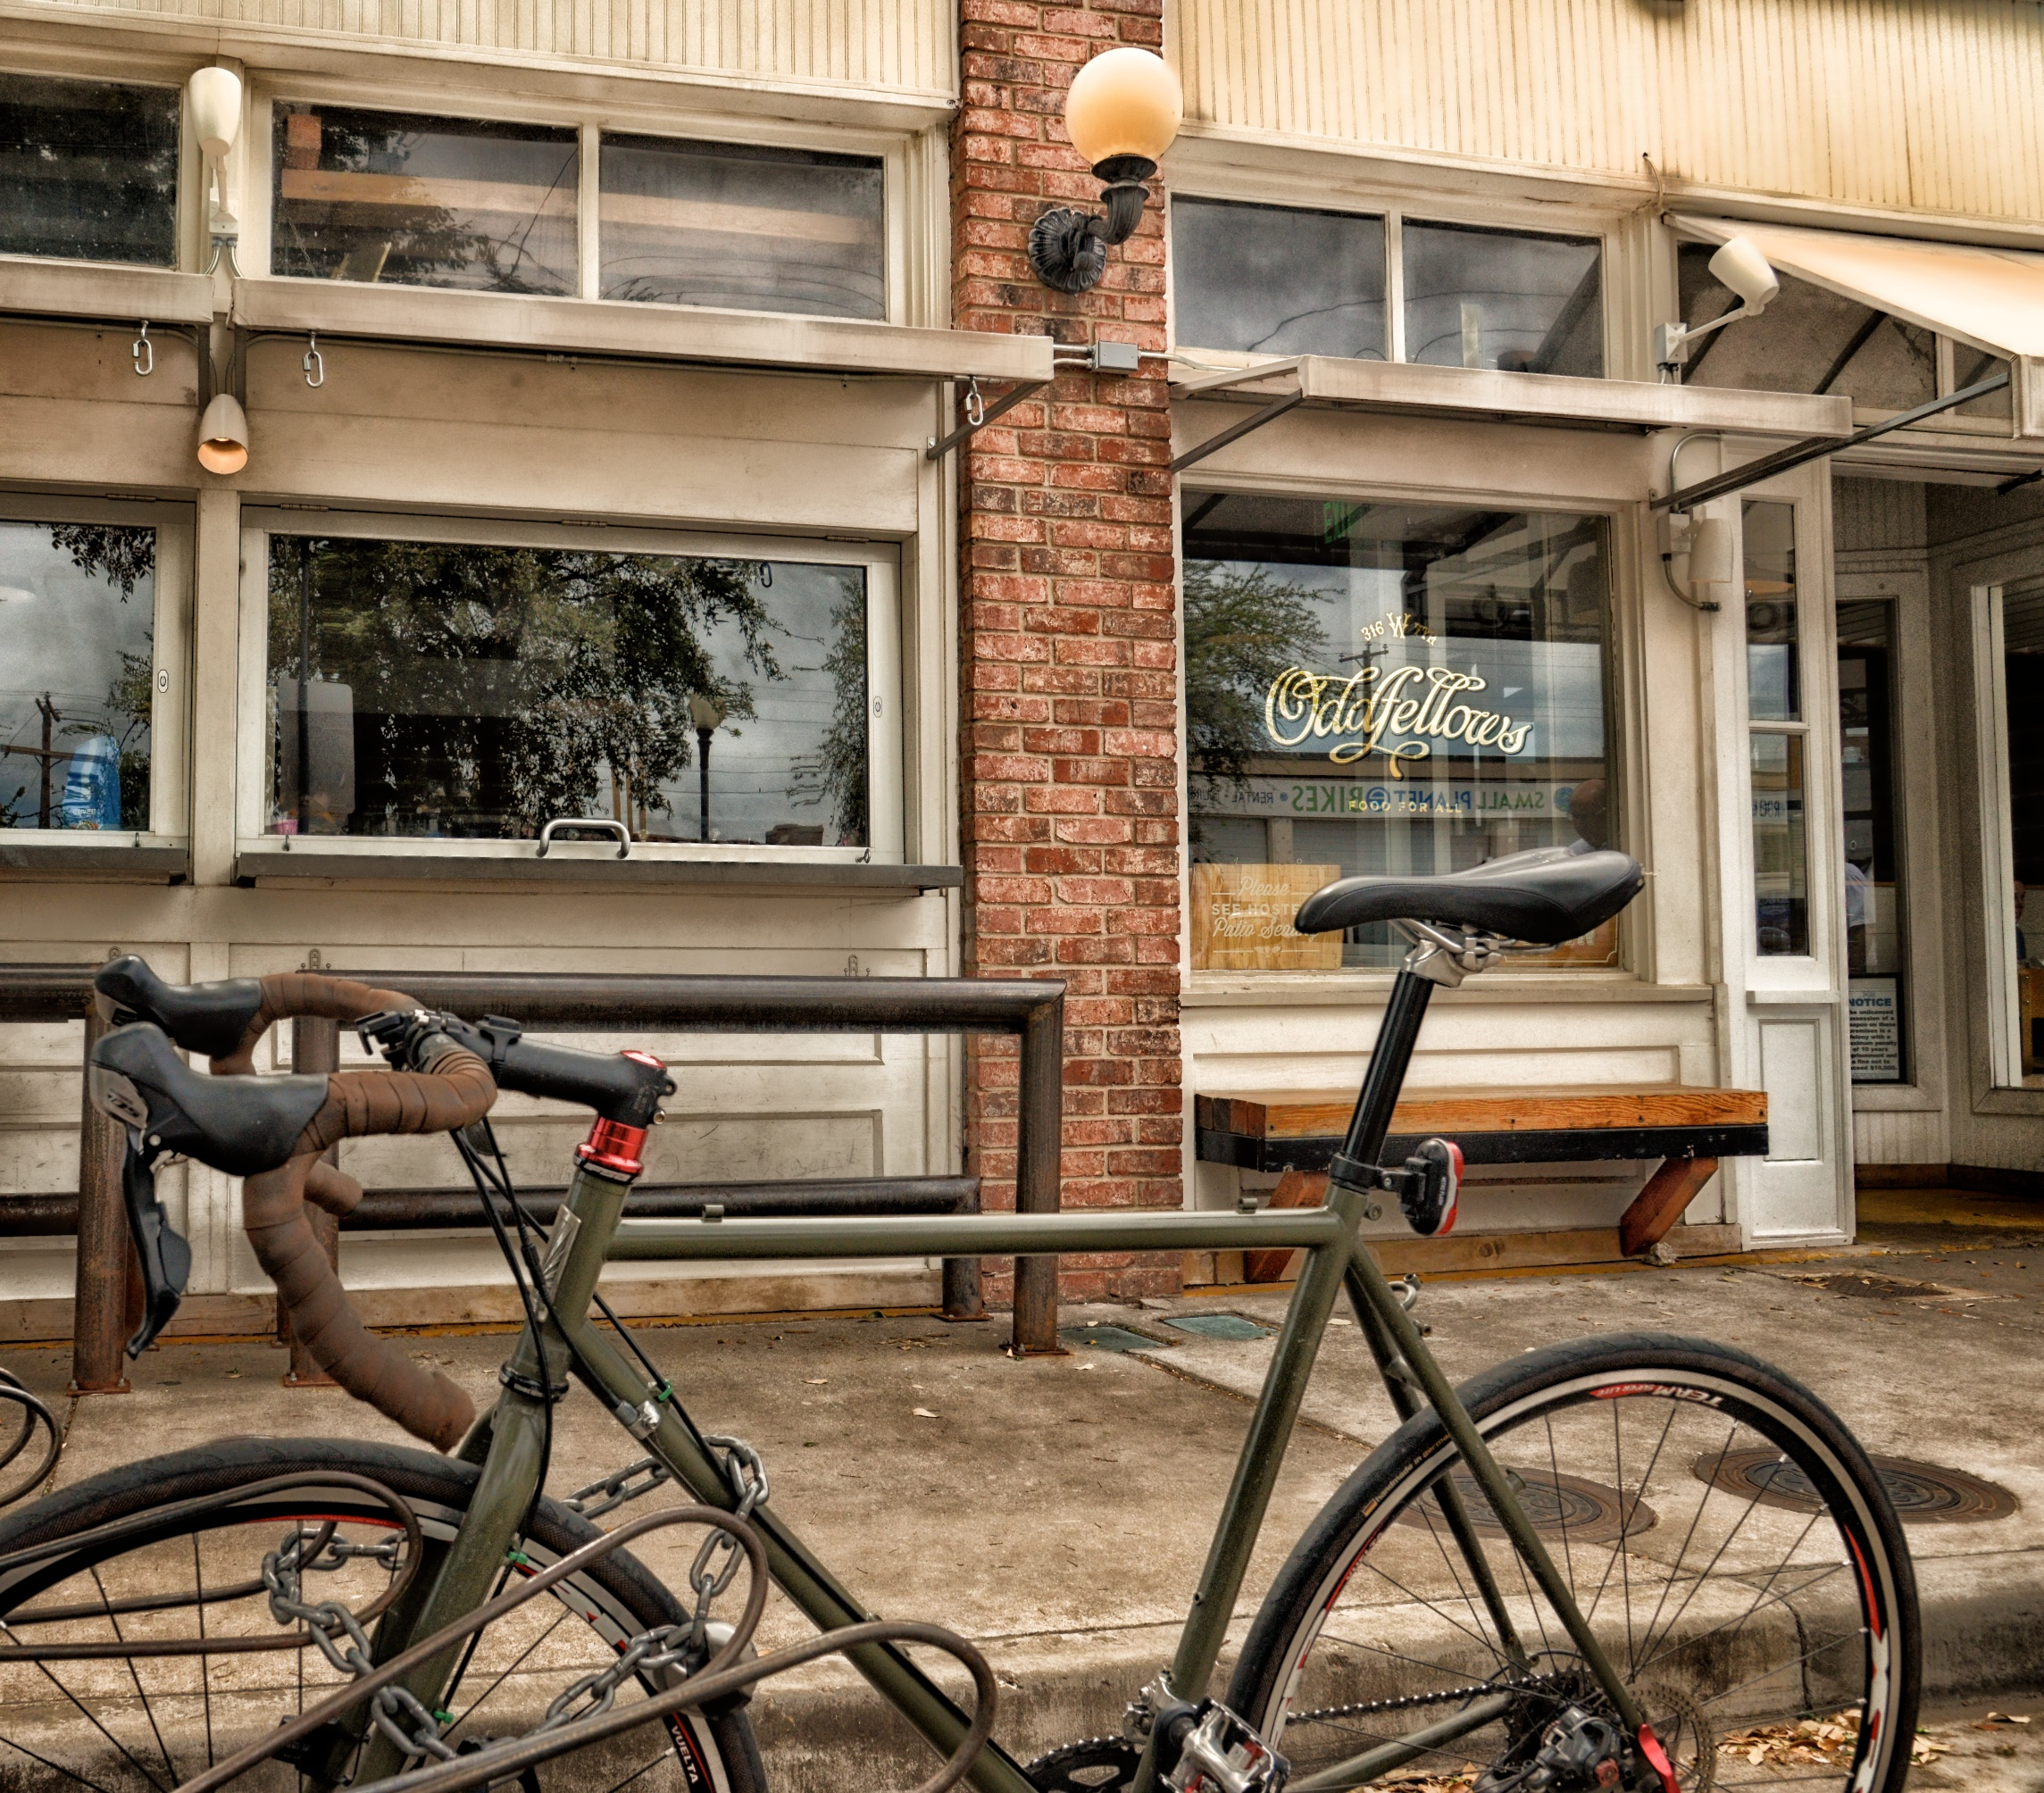 Road bike at Oddfellows